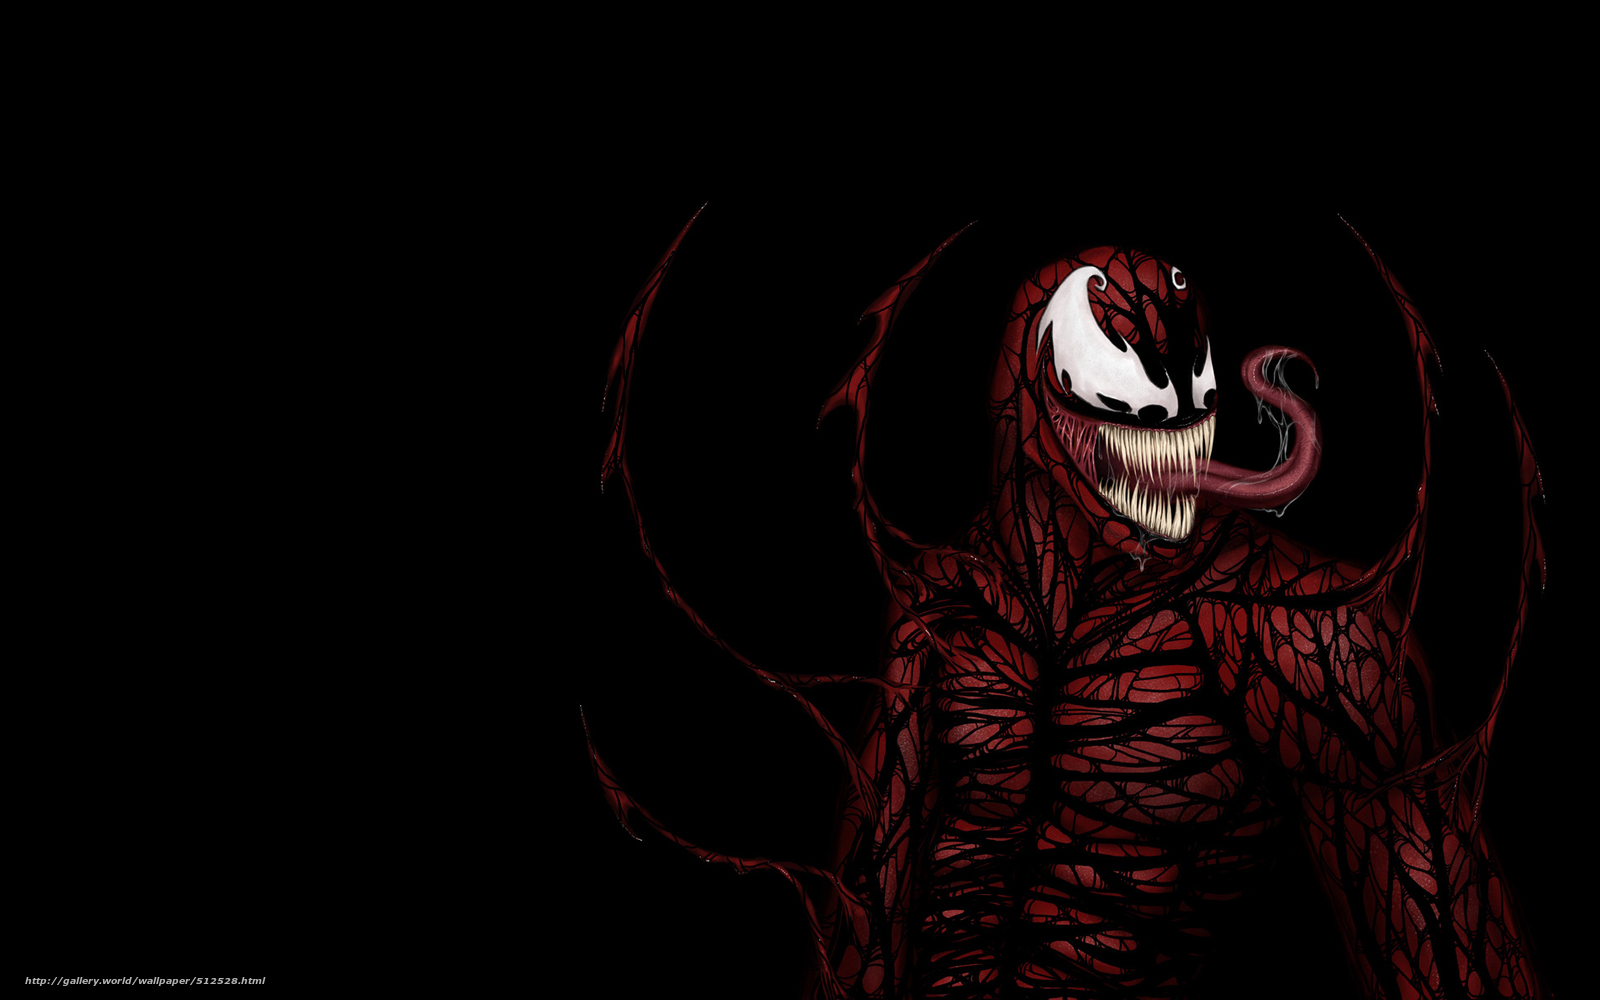 spiderman wallpapers creature black wallpaper background red 1600x1000